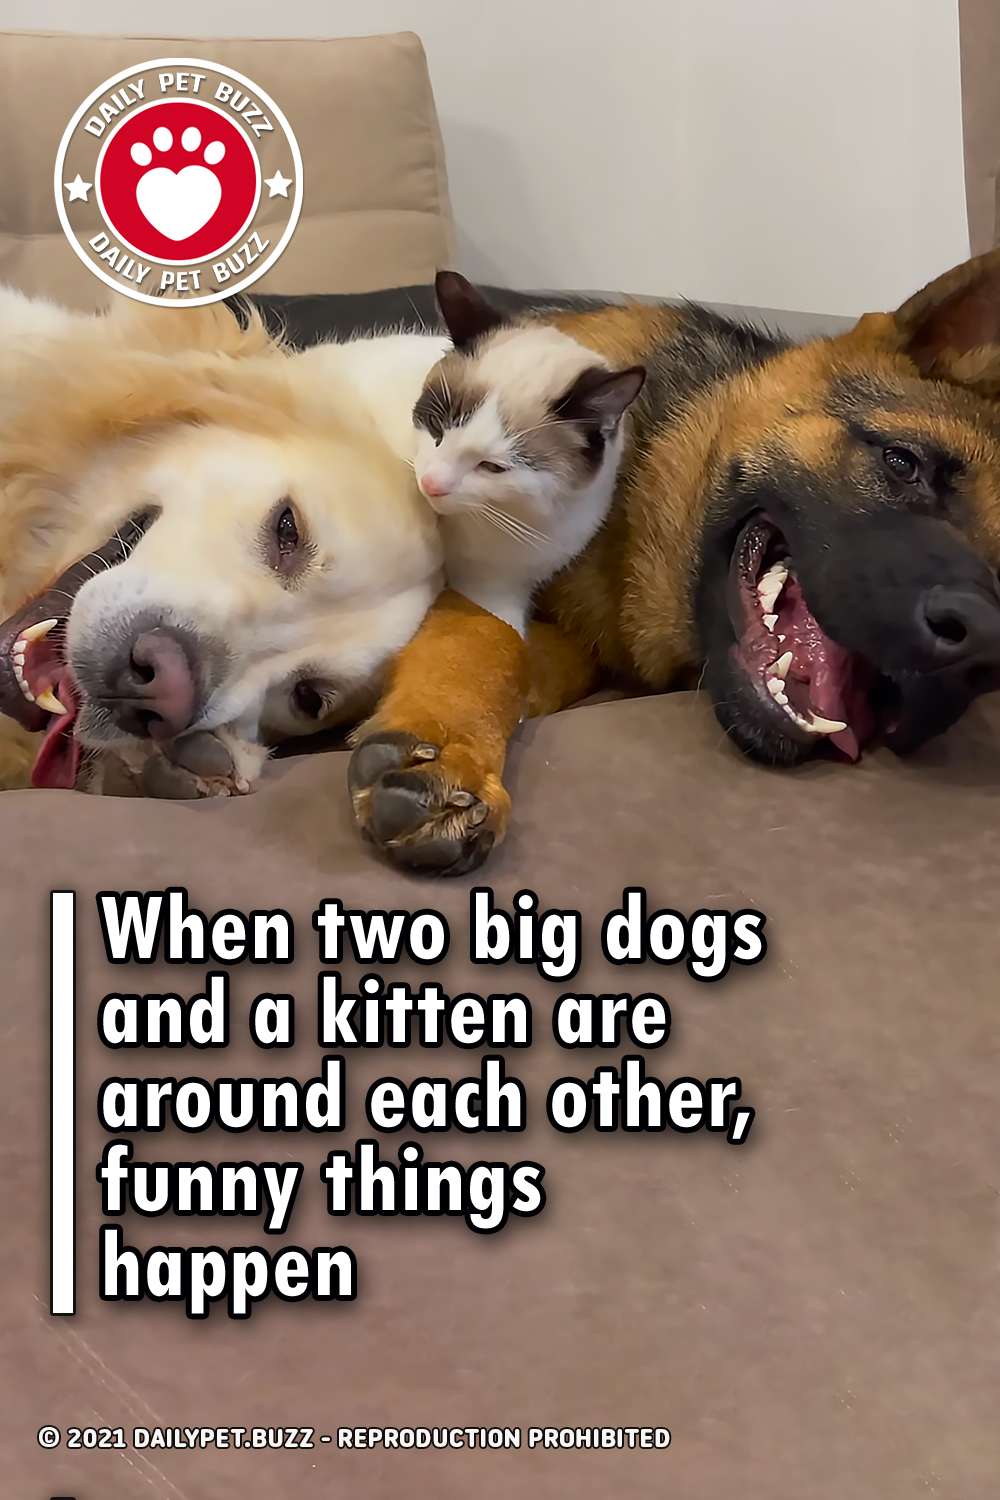 When two big dogs and a kitten are around each other, funny things happen